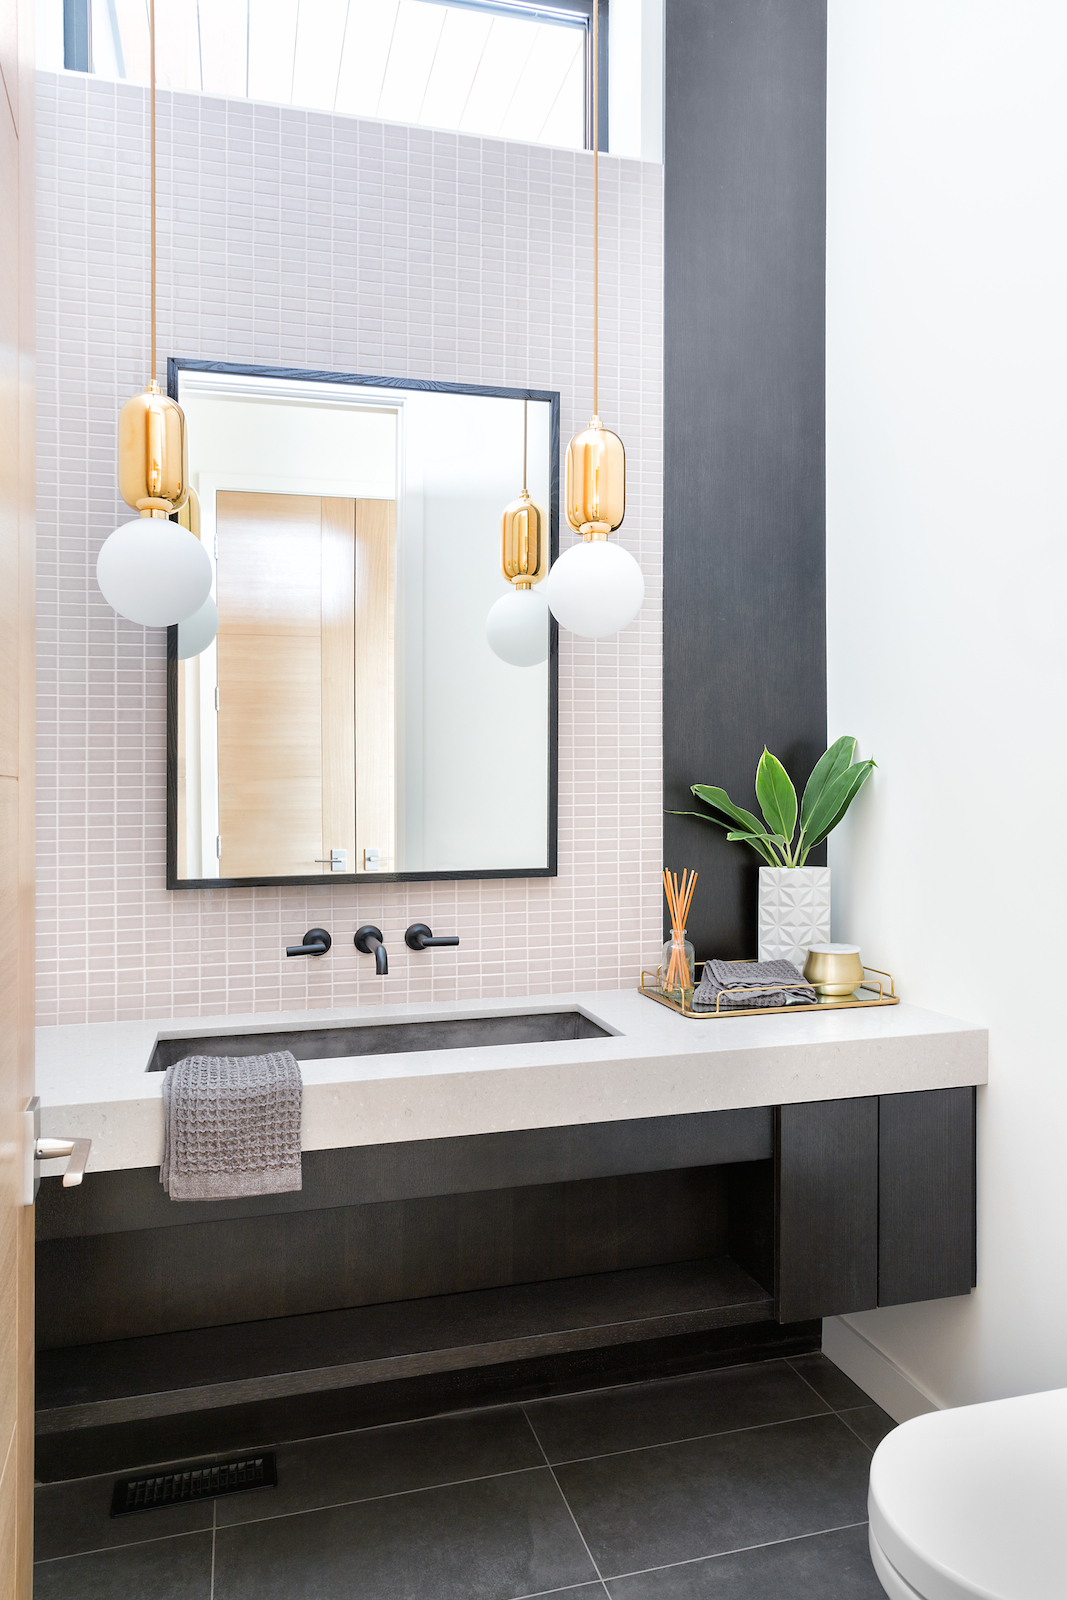 Elbow Park Modern Powder Room Reveal, Modern Contrast with Muted Colours, Calgary Interior Designer, Nyla Free Designs Inc., Phil Crozier Photography